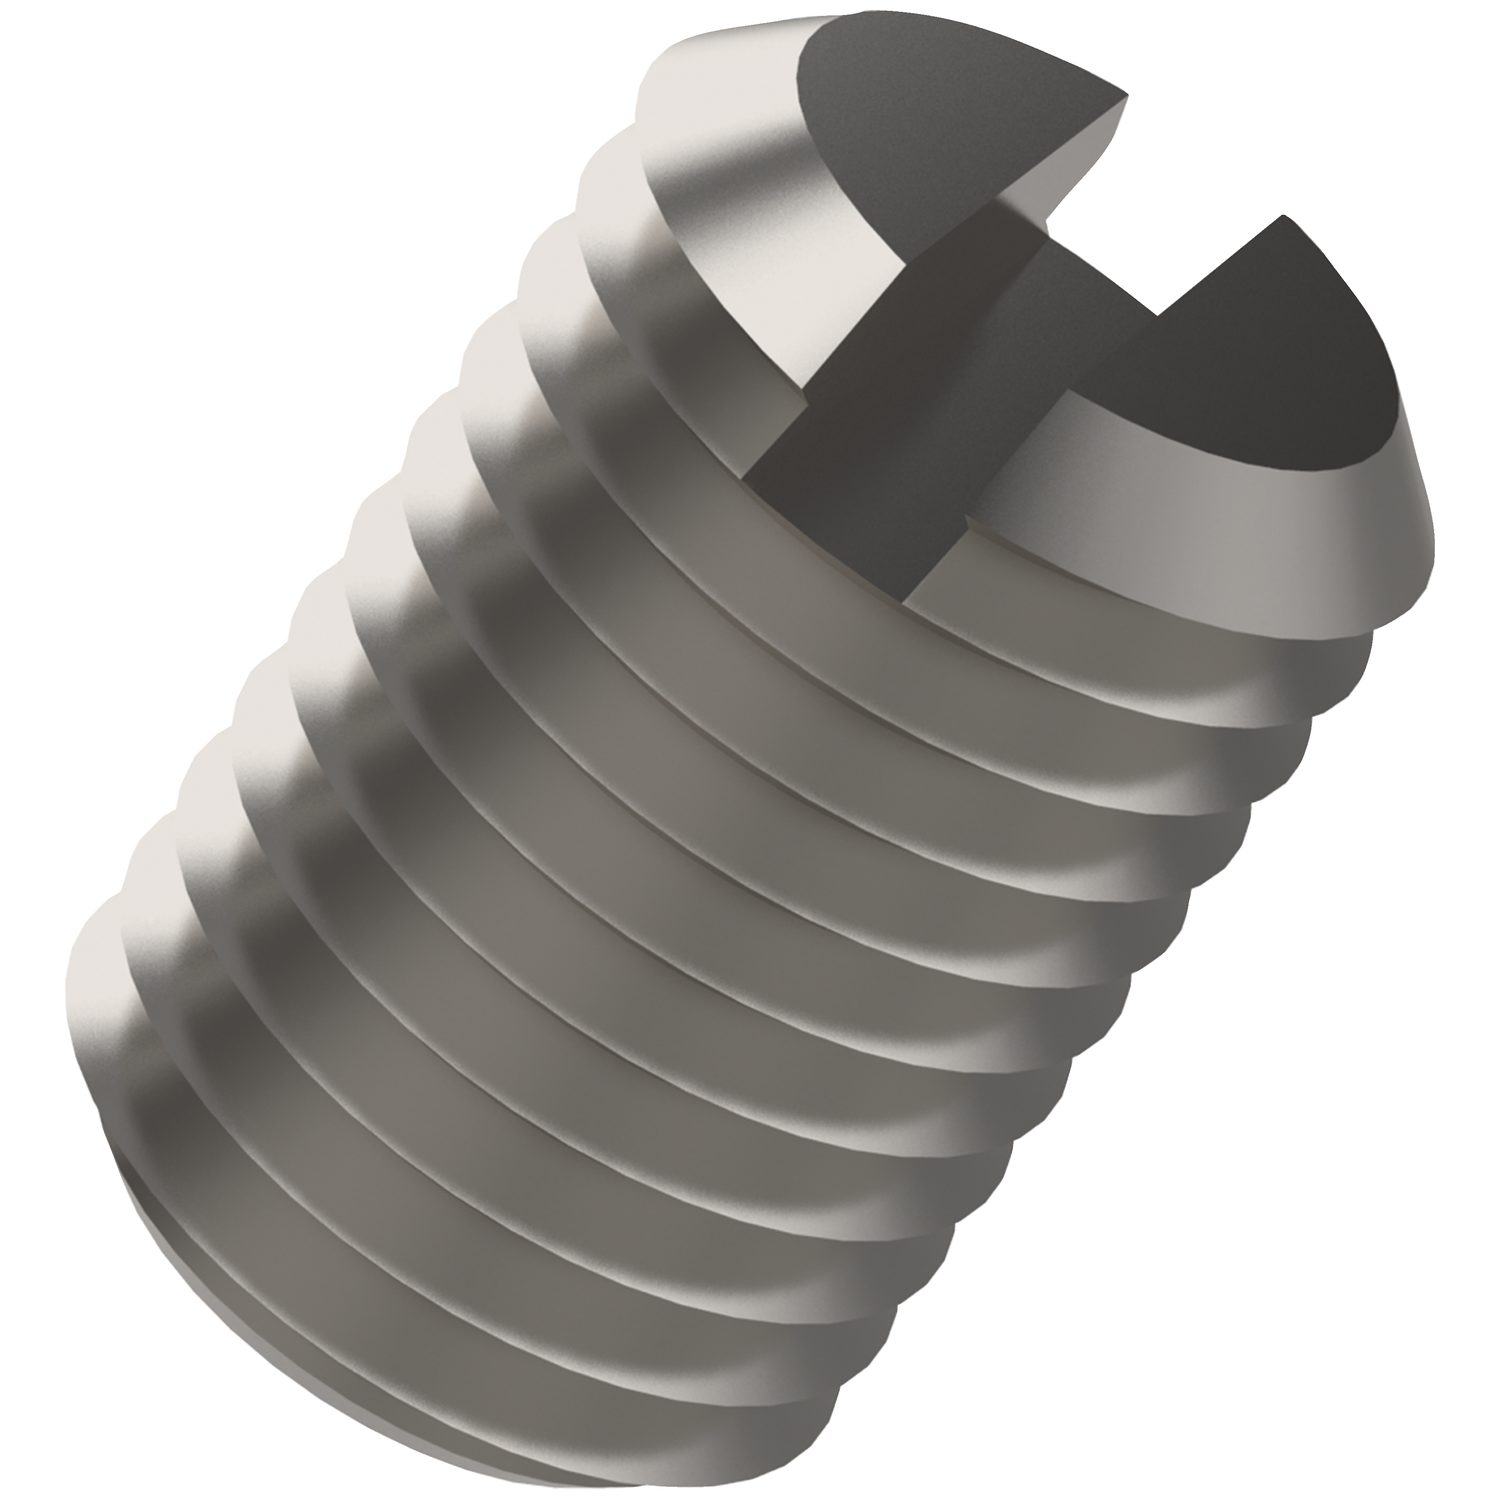 P0276.A4 - Slotted Set Screws Cup Point